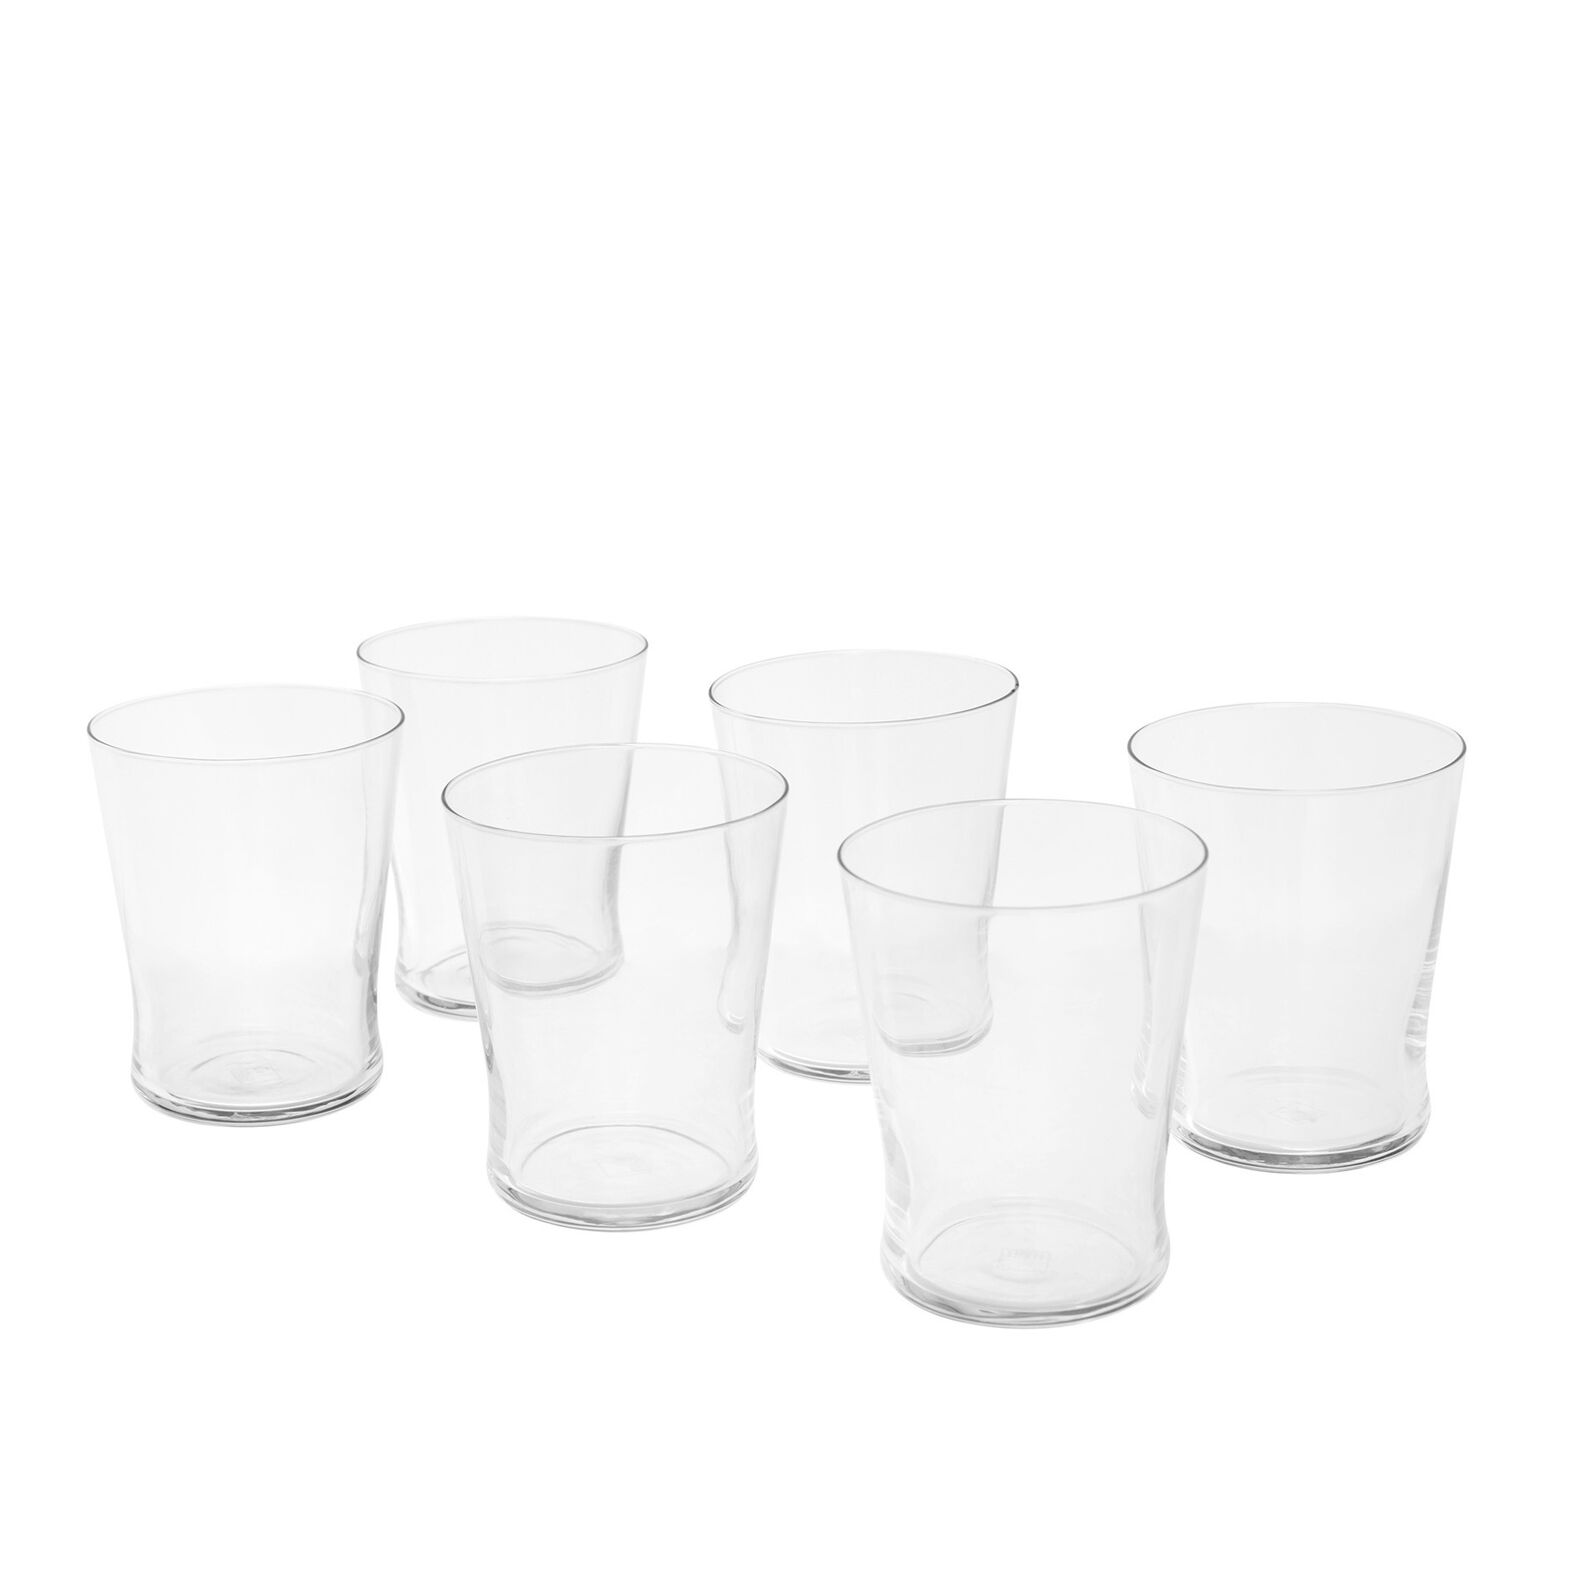 Set of 6 Conic water tumblers